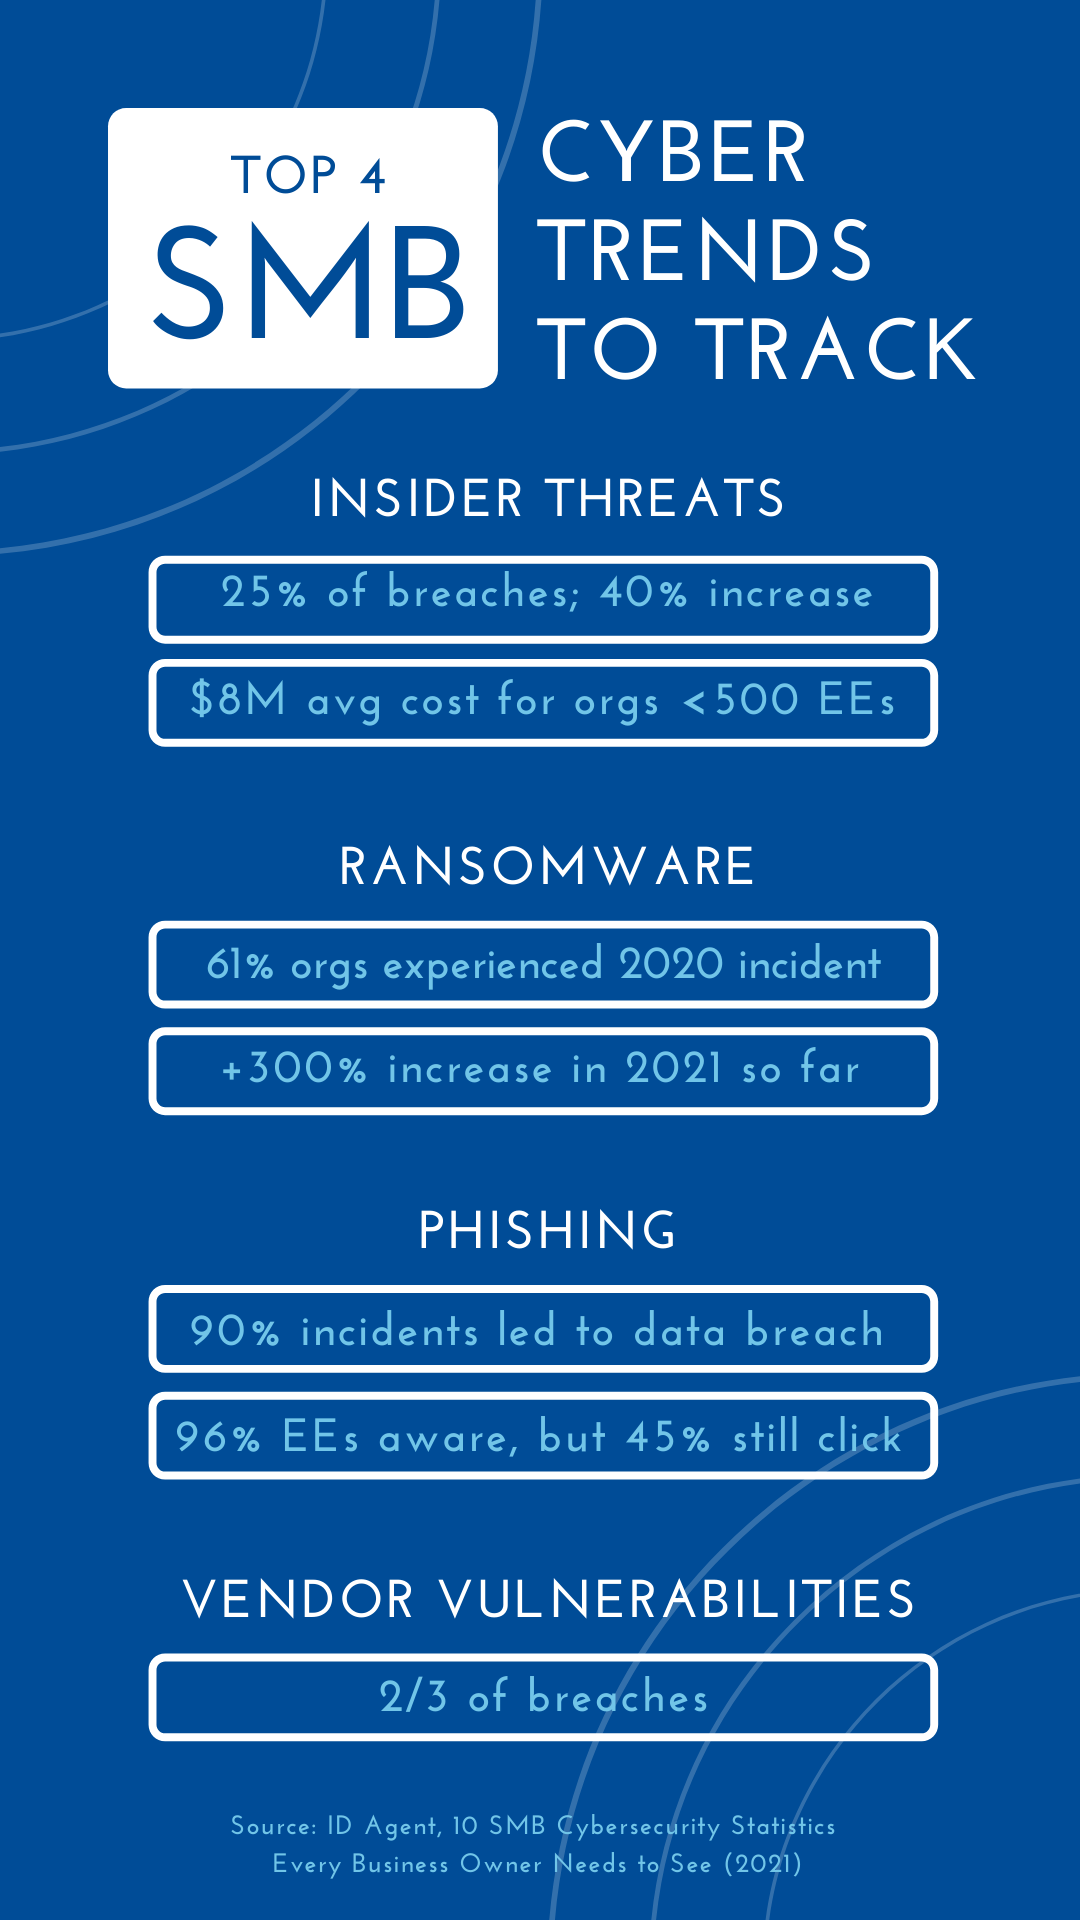 SMB-CYBER-TRENDS- TO-TRACK-2021